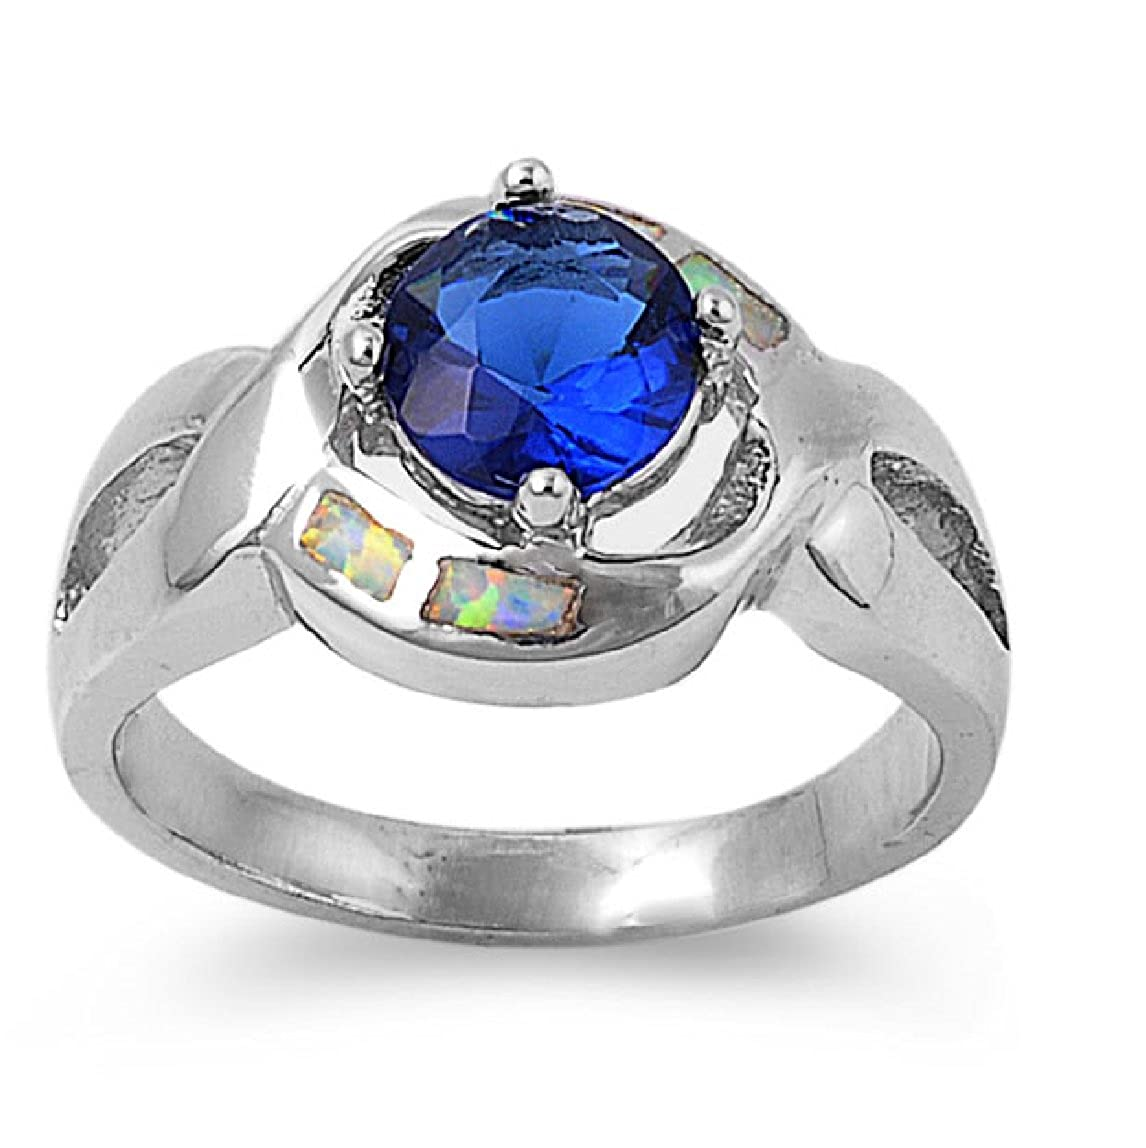 CloseoutWarehouse Round Center Simulated Sapphire Cubic Zirconia Simulated Opal Ring 925 Sterling Silver